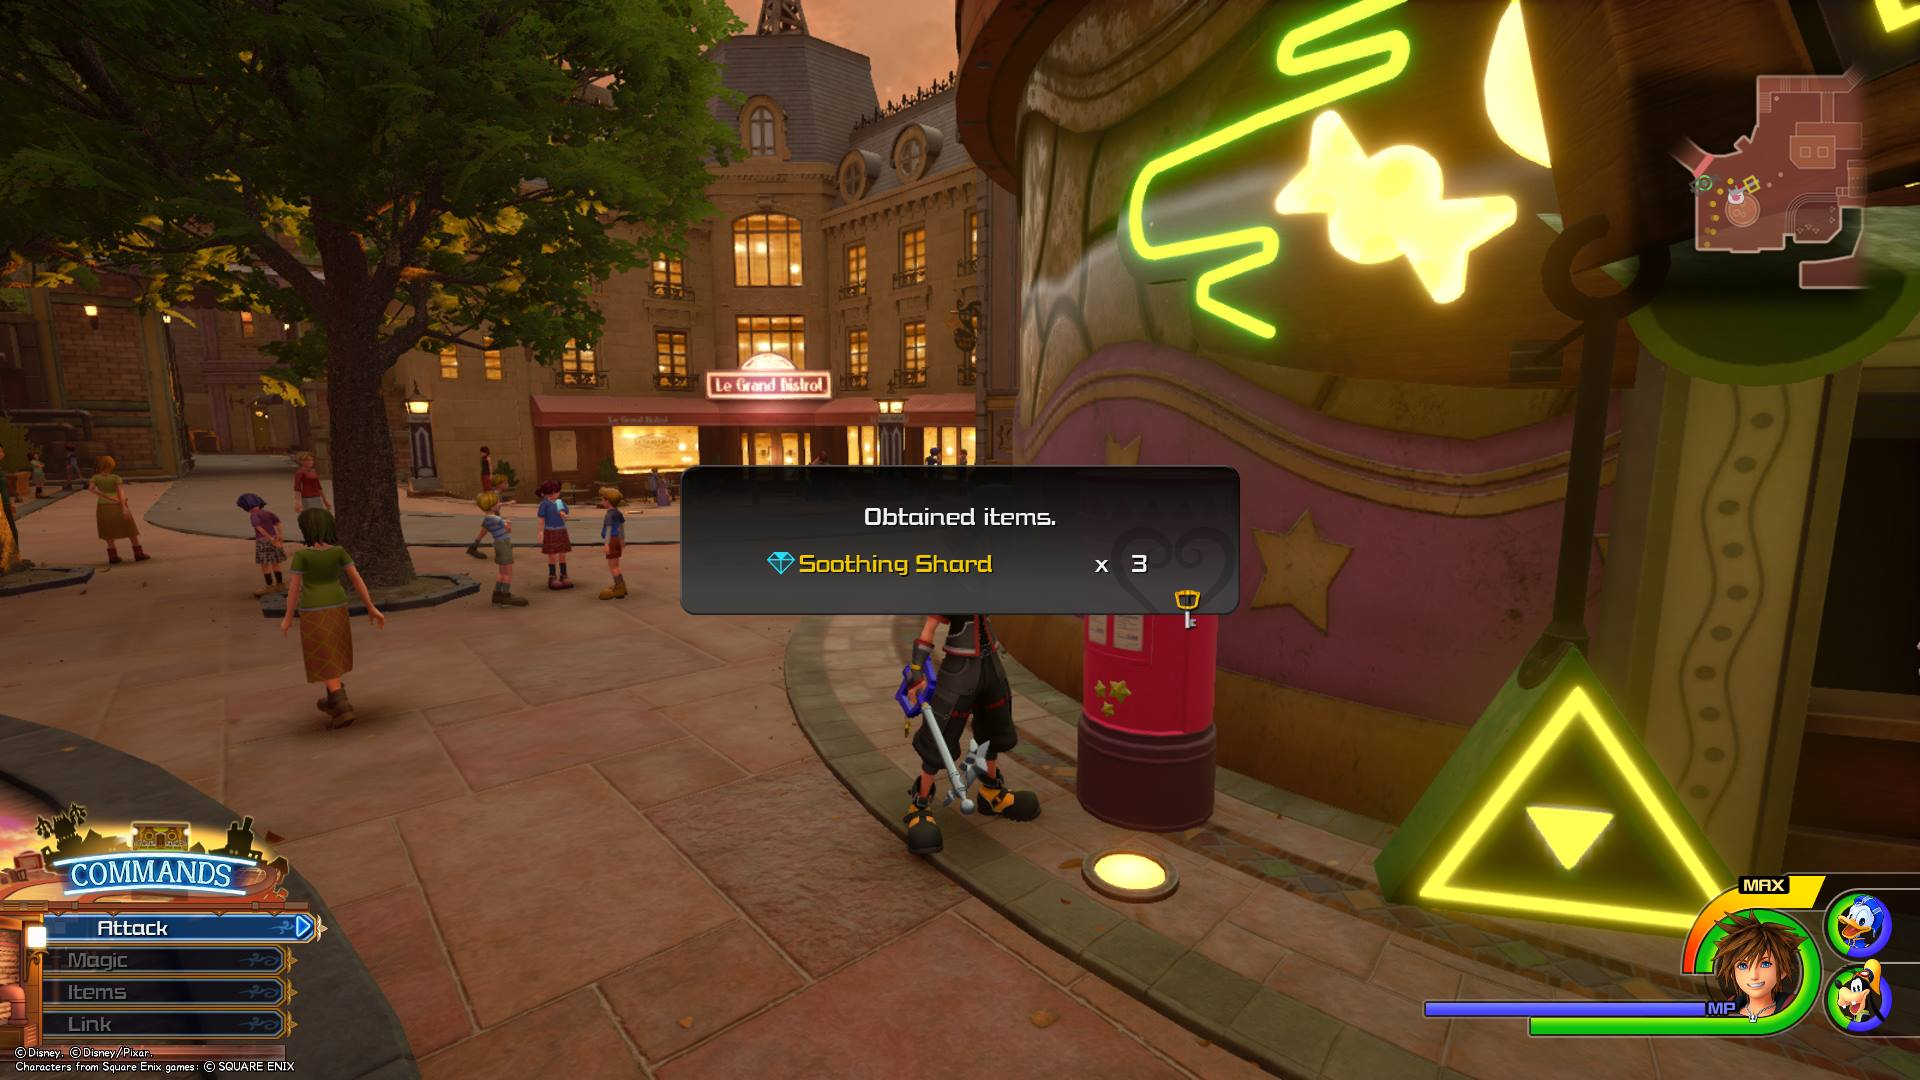 You'll receive rewards for mailing Postcards in Kingdom Hearts 3.